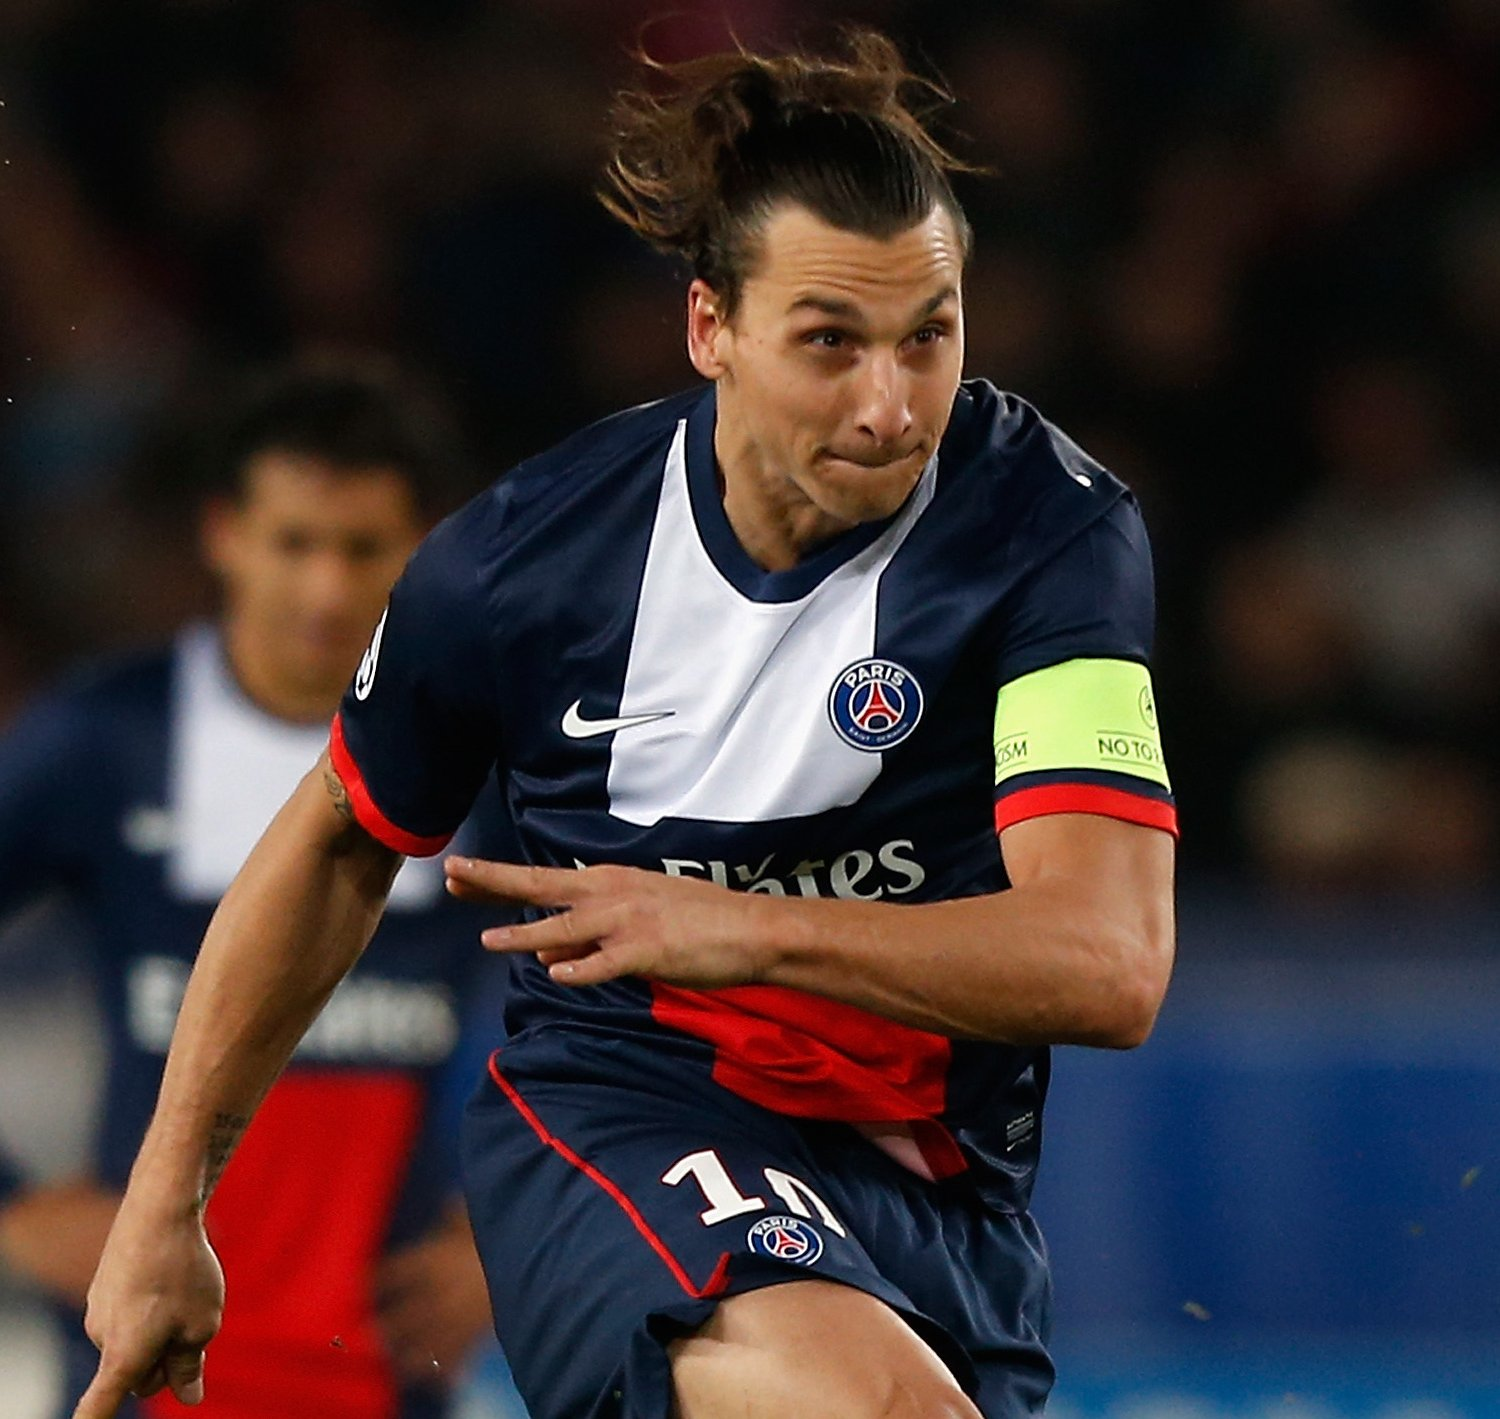 Lucas Moura Of Psg In Action During The Ligue 1 Match: GIFs: Zlatan Ibrahimovic Scores Hat-Trick To Lead PSG Past